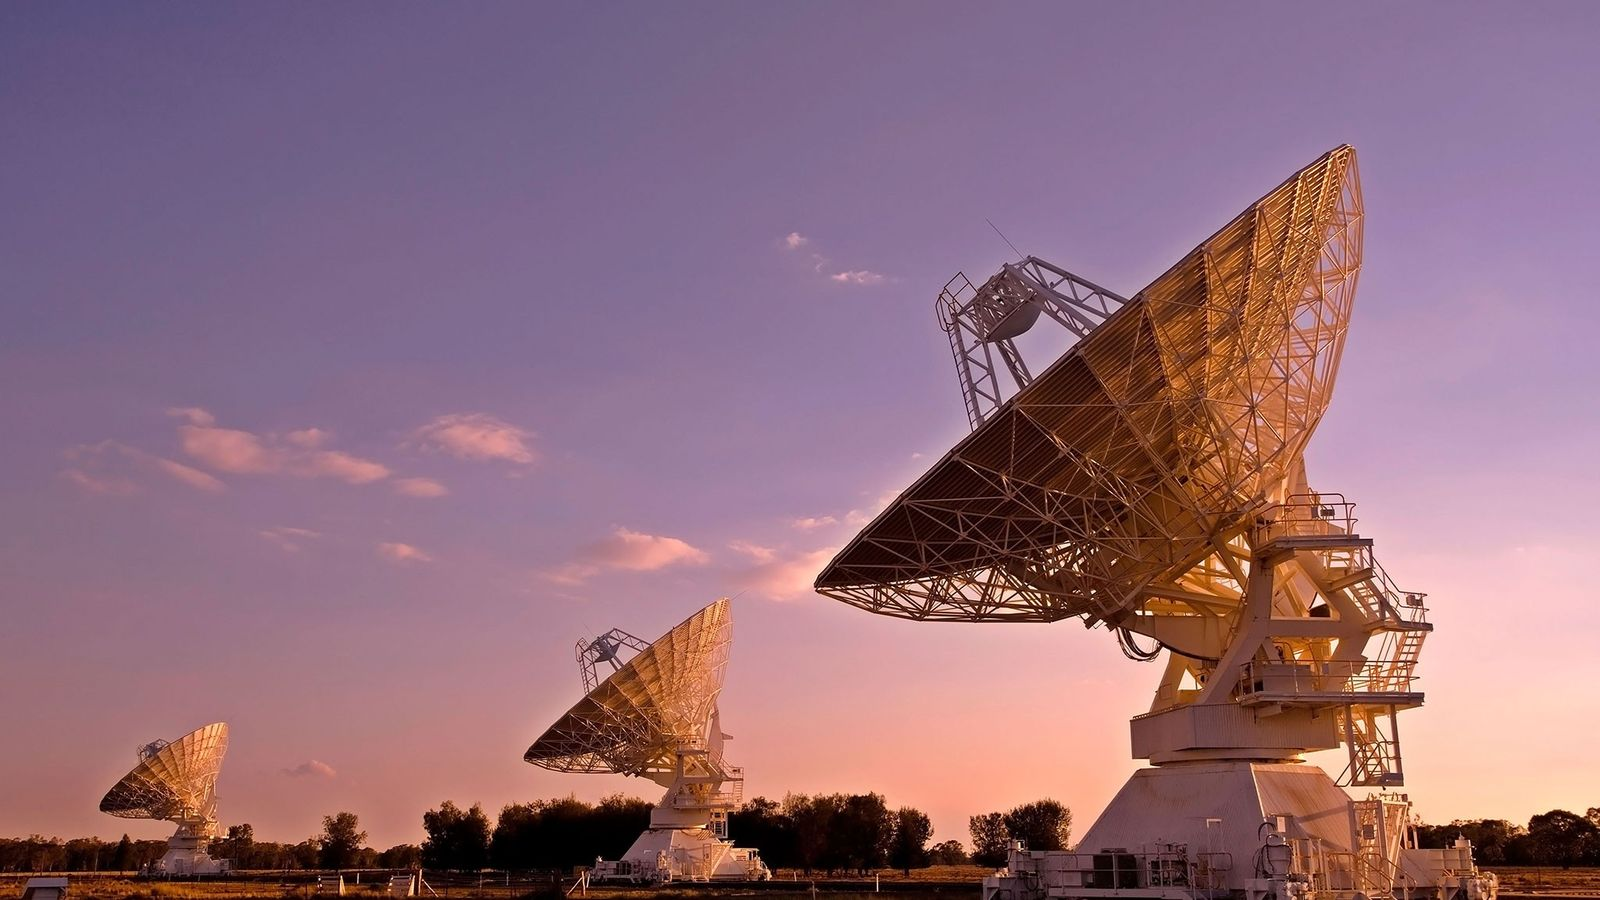 The sun sets on the Australian outback behind the Australia Telescope Compact Array, a series of ...